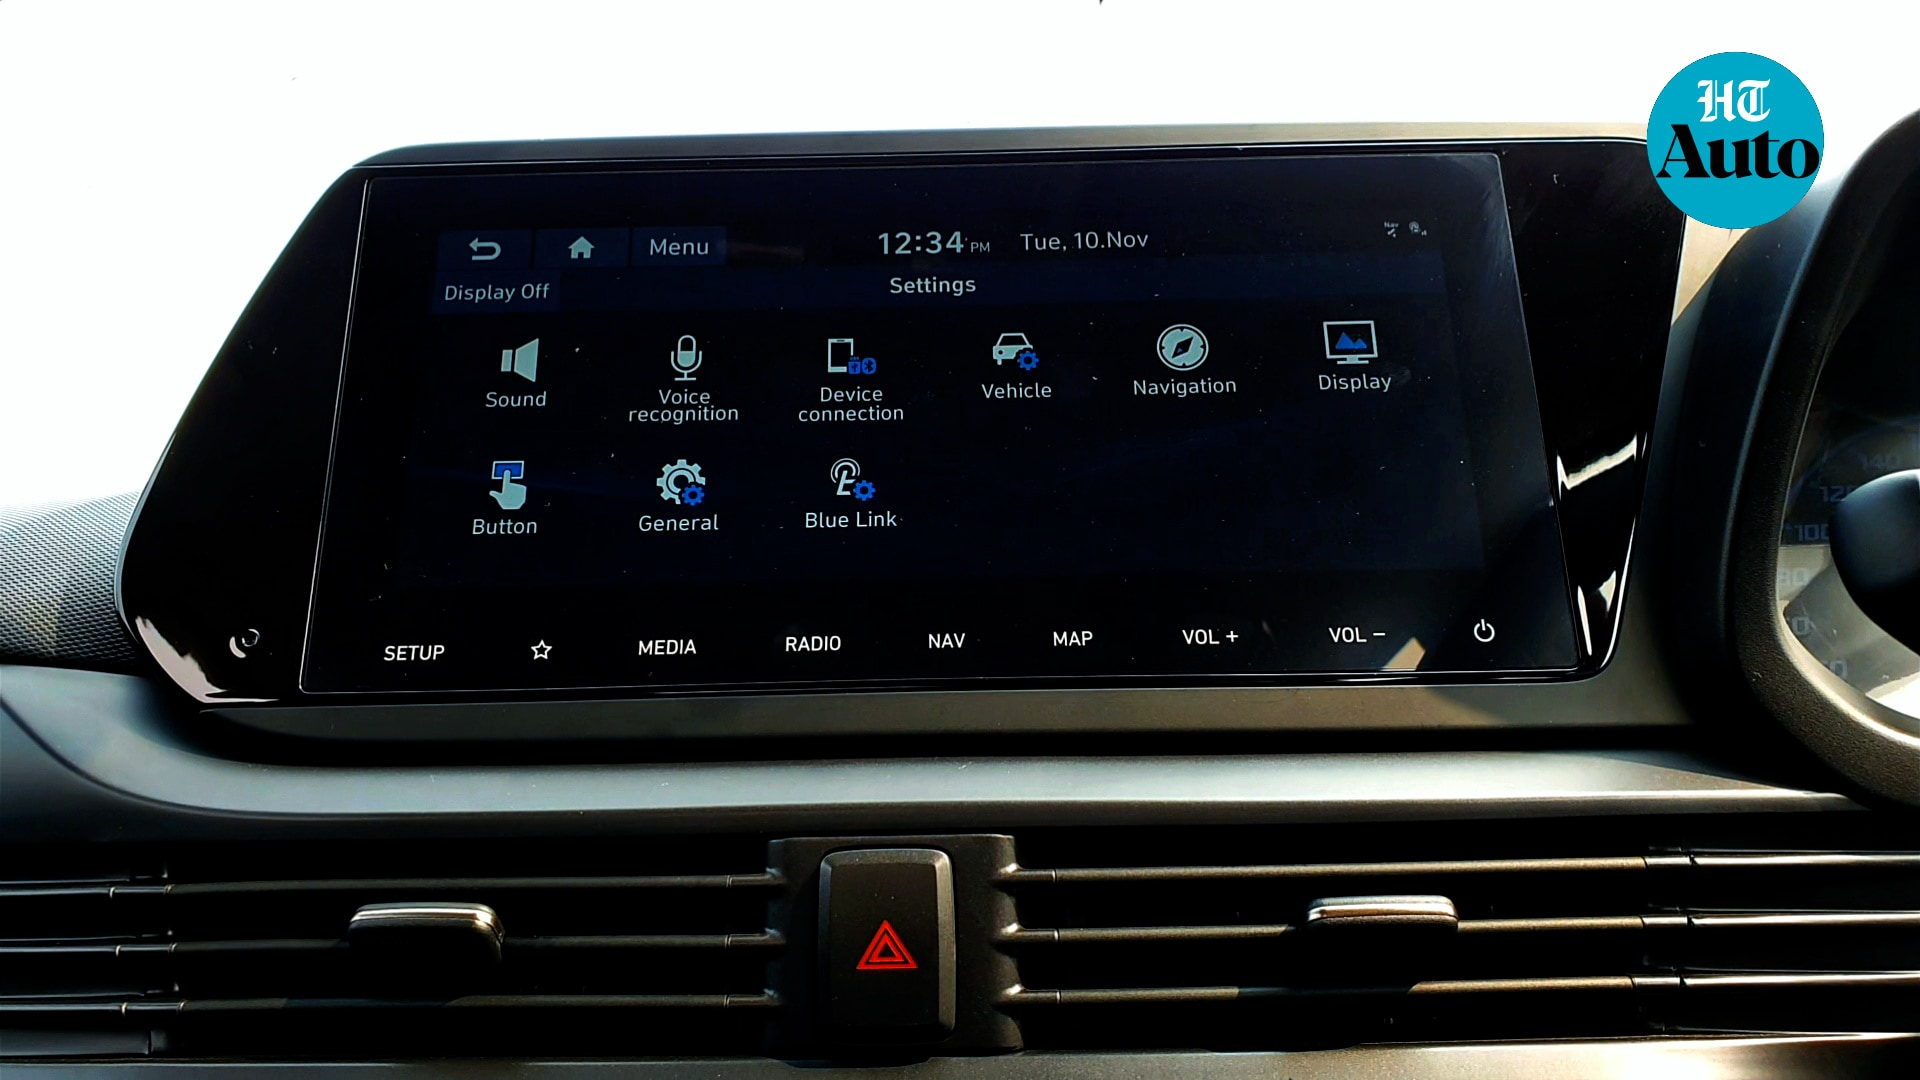 The cabin of the new 2020 i20 gets a 10.25-inch infotainment and a large Digital Cluster with TFT MID that puts out information in a bold and vibrant manner. The company's BlueLink technology makes its debut in the i20 which allows interaction through smartphones and voice commands. Map updates will be over-the-air. (HT Photo/Sabyasachi Dasgupta)